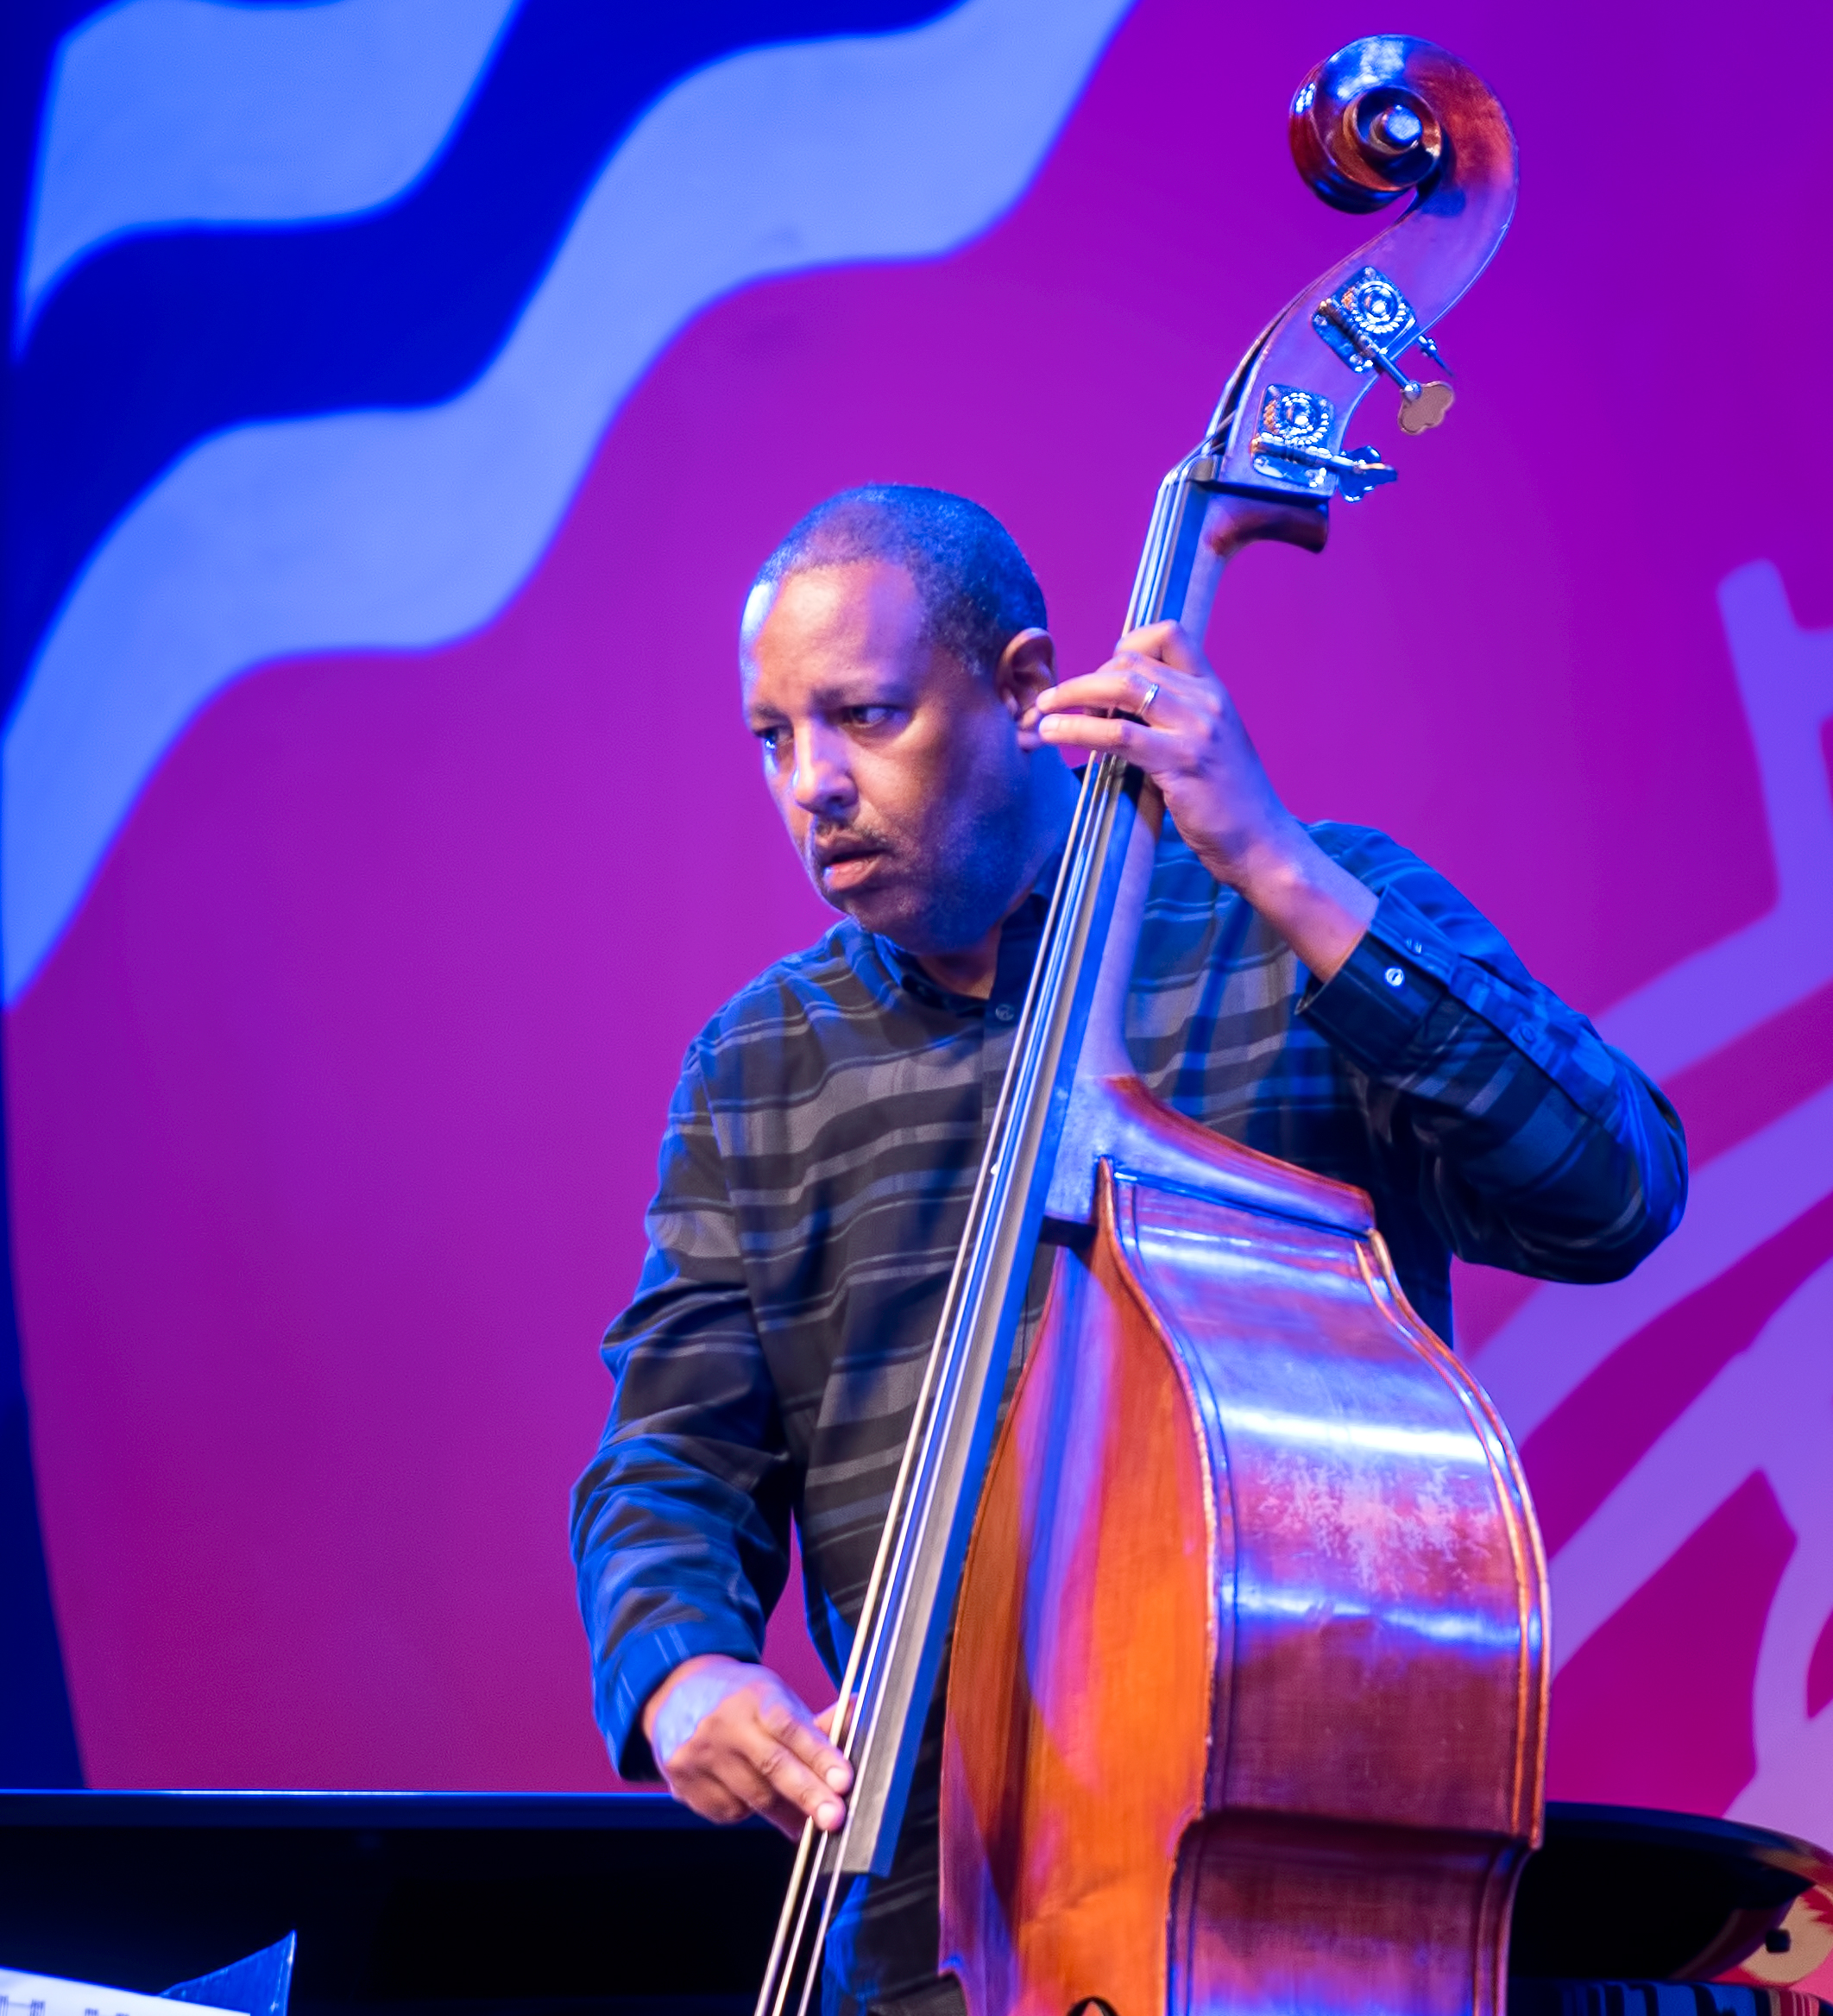 Robert Hurst with a Tribute to Geri Allen at the Monterey Jazz Festival 2018